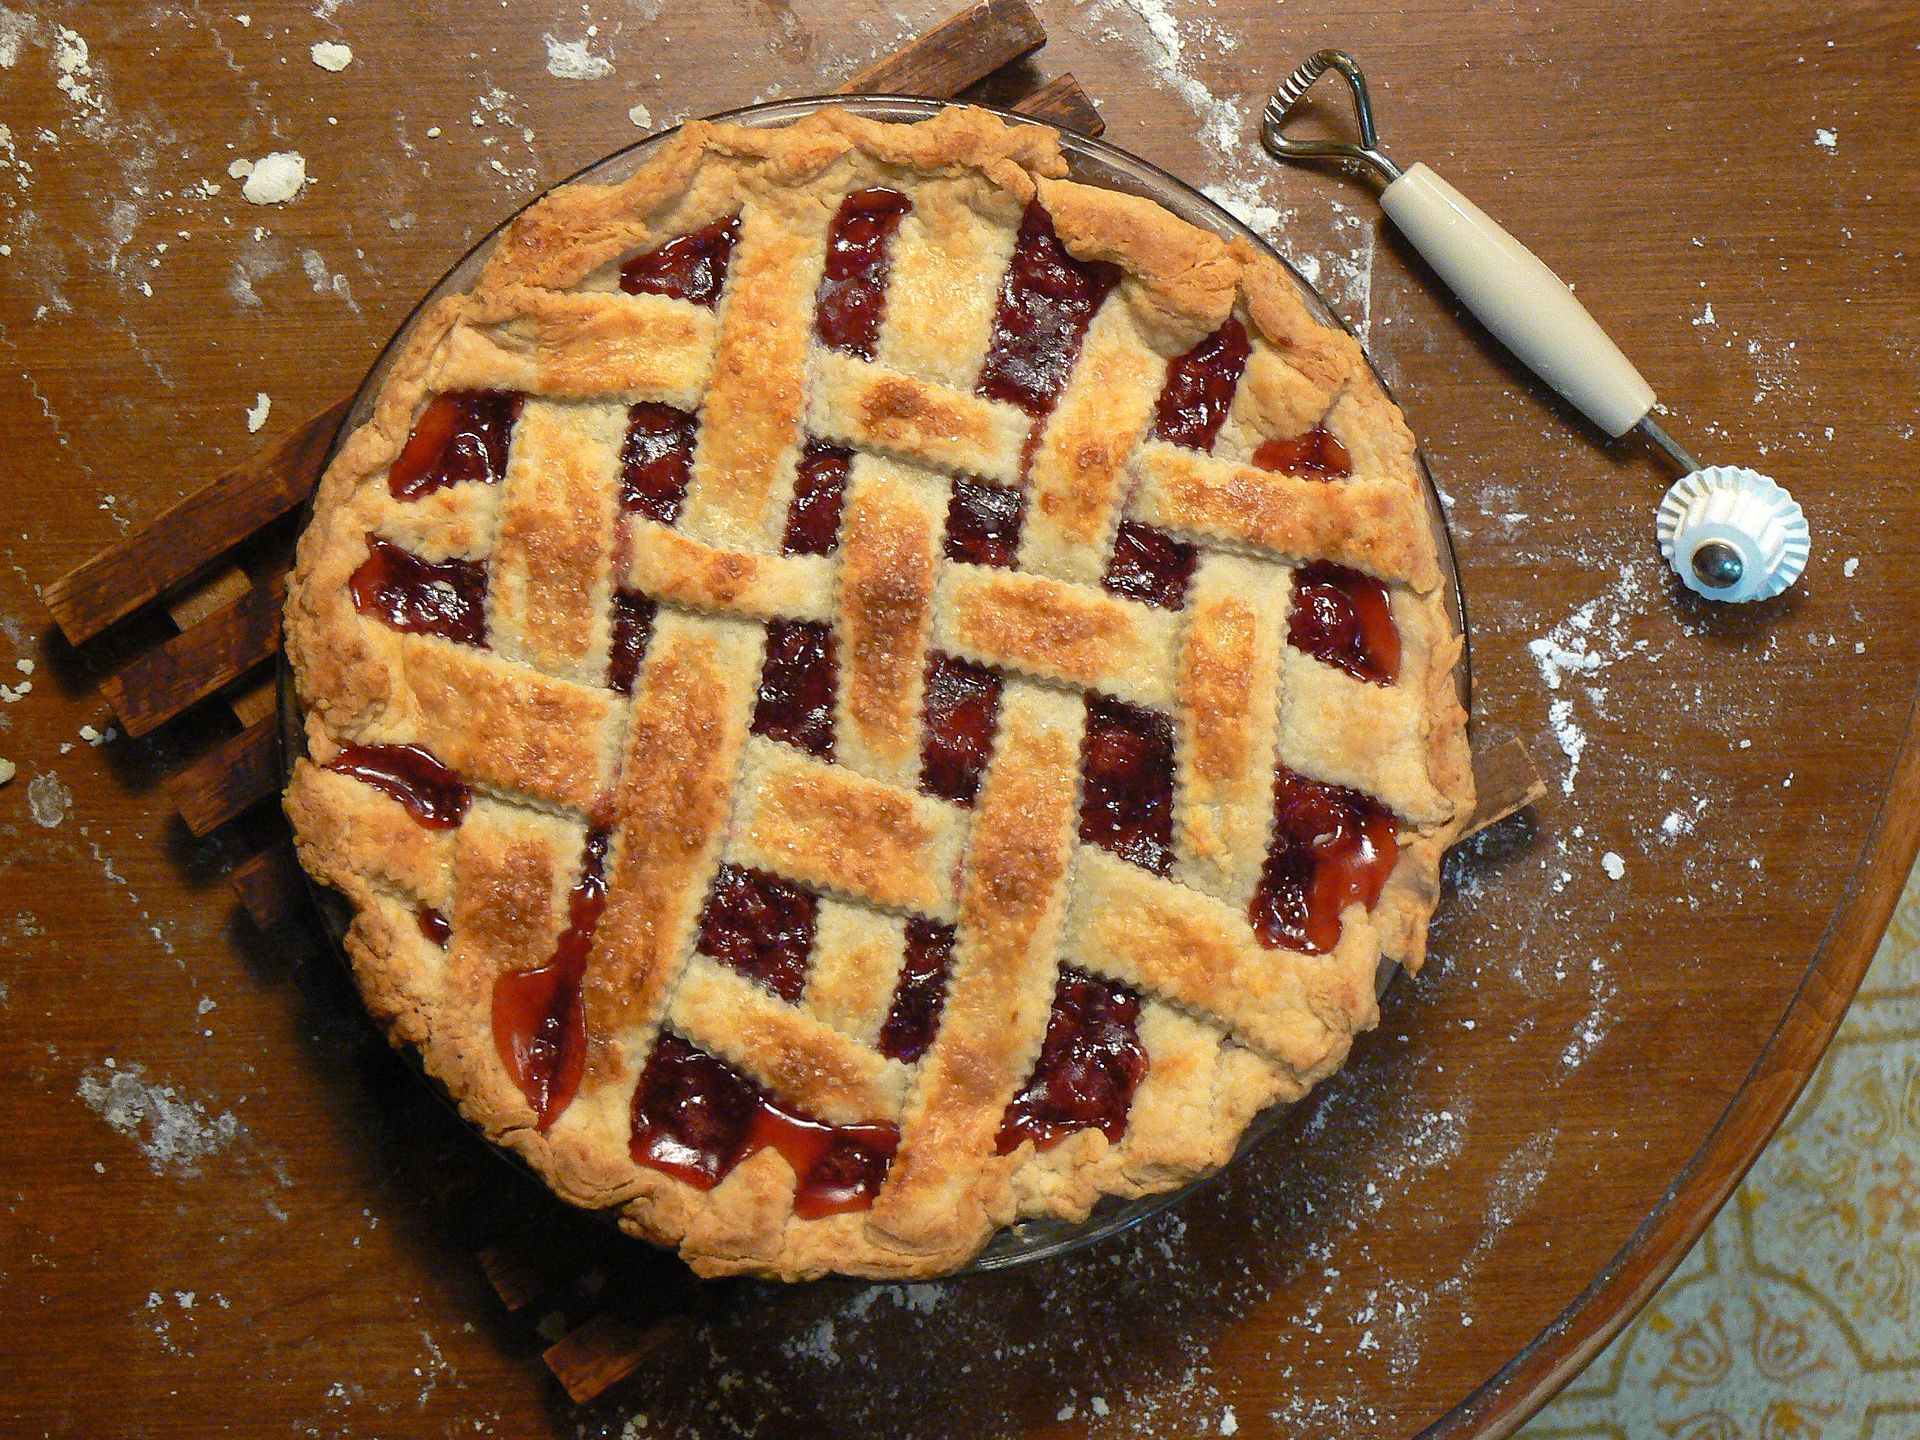 Cherry pie sexual meaning